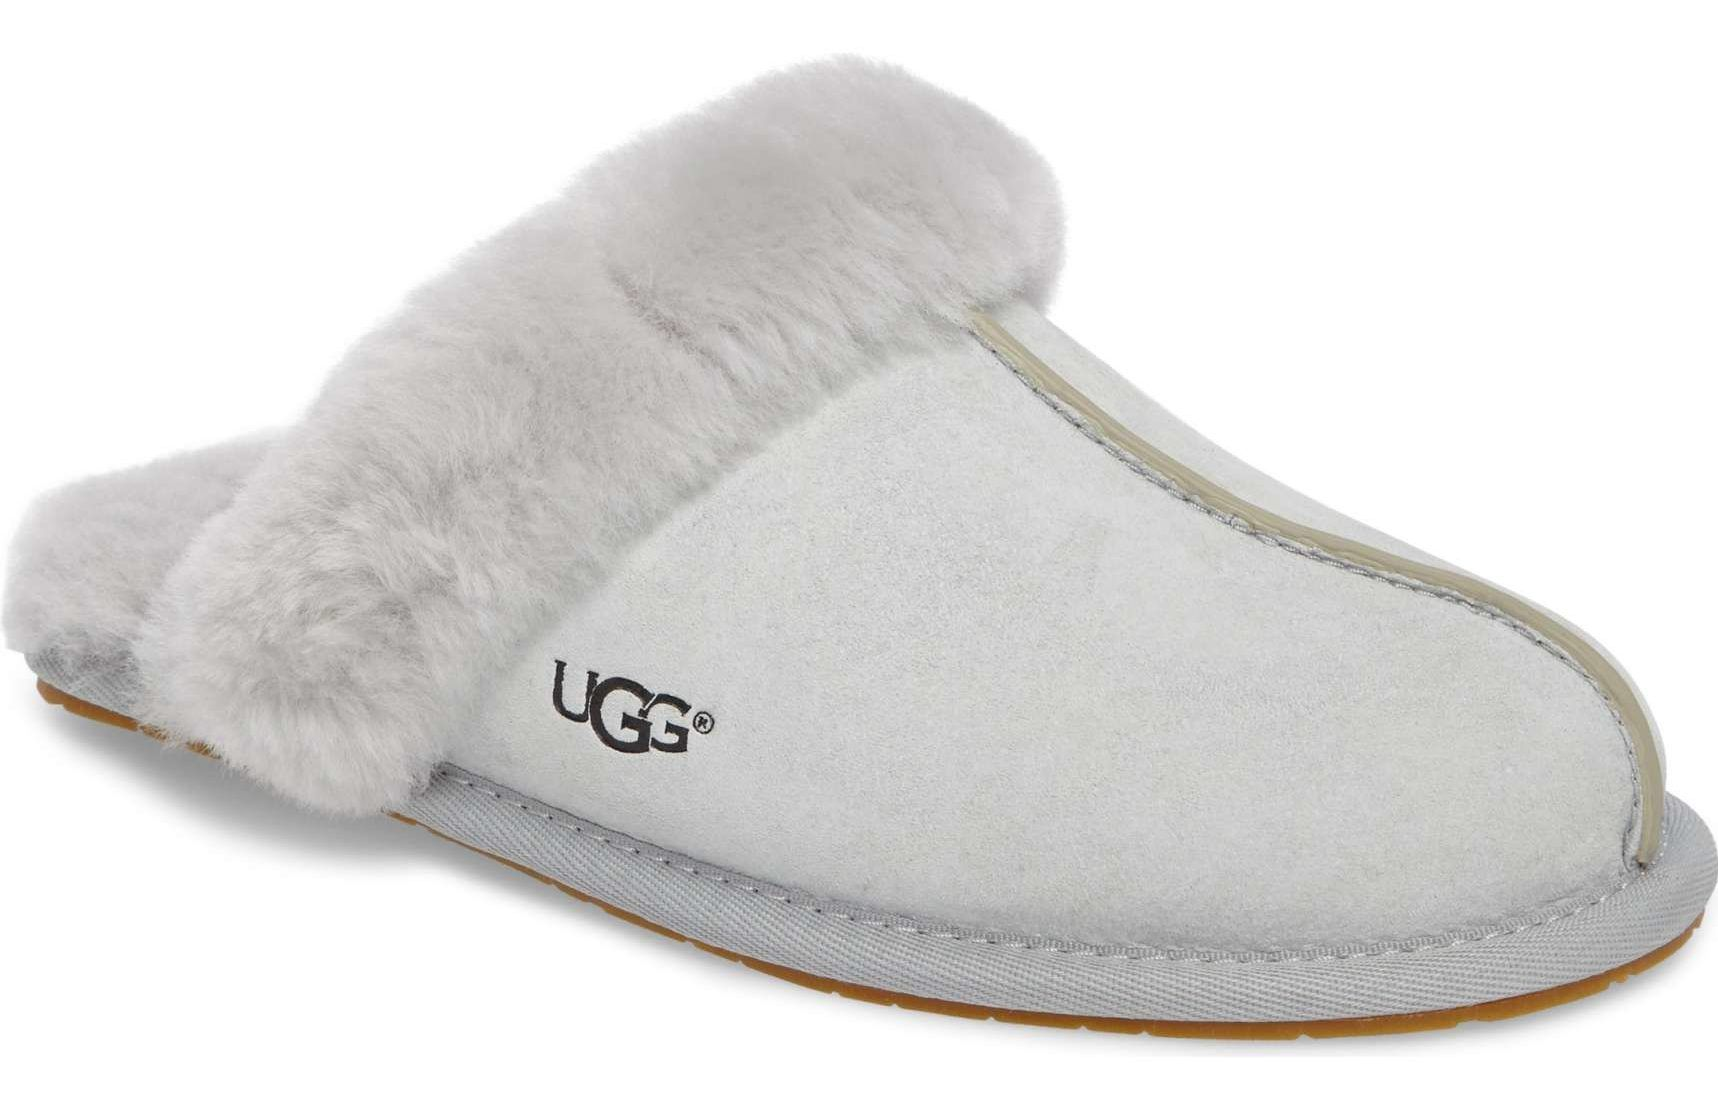 f6d07b8ba2a Christmas Gift for Wife 2017  Grey Ugg Slippers For Her 2018